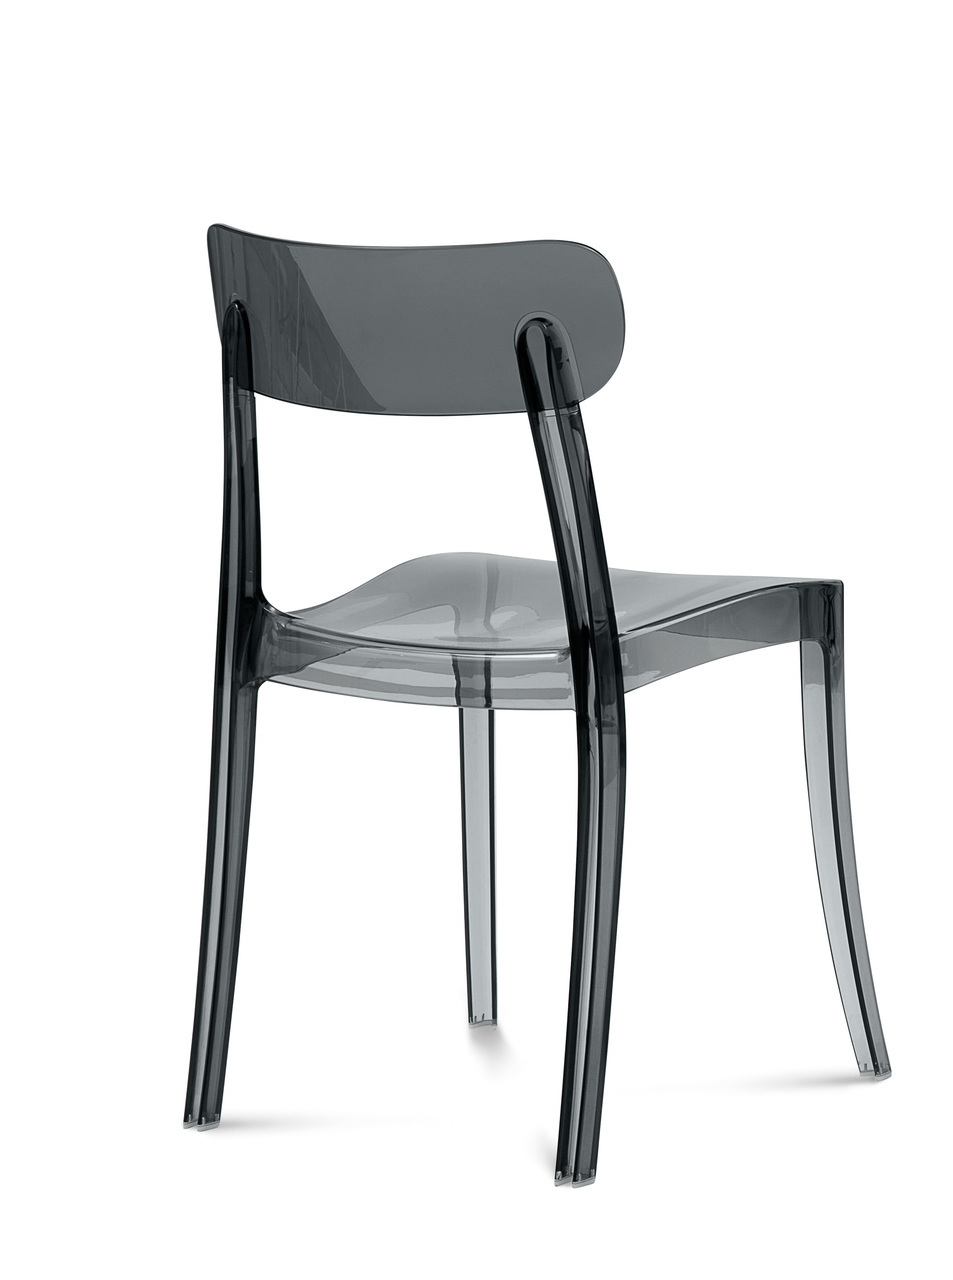 New Retro Stacking Chair set of 4 | Domitalia